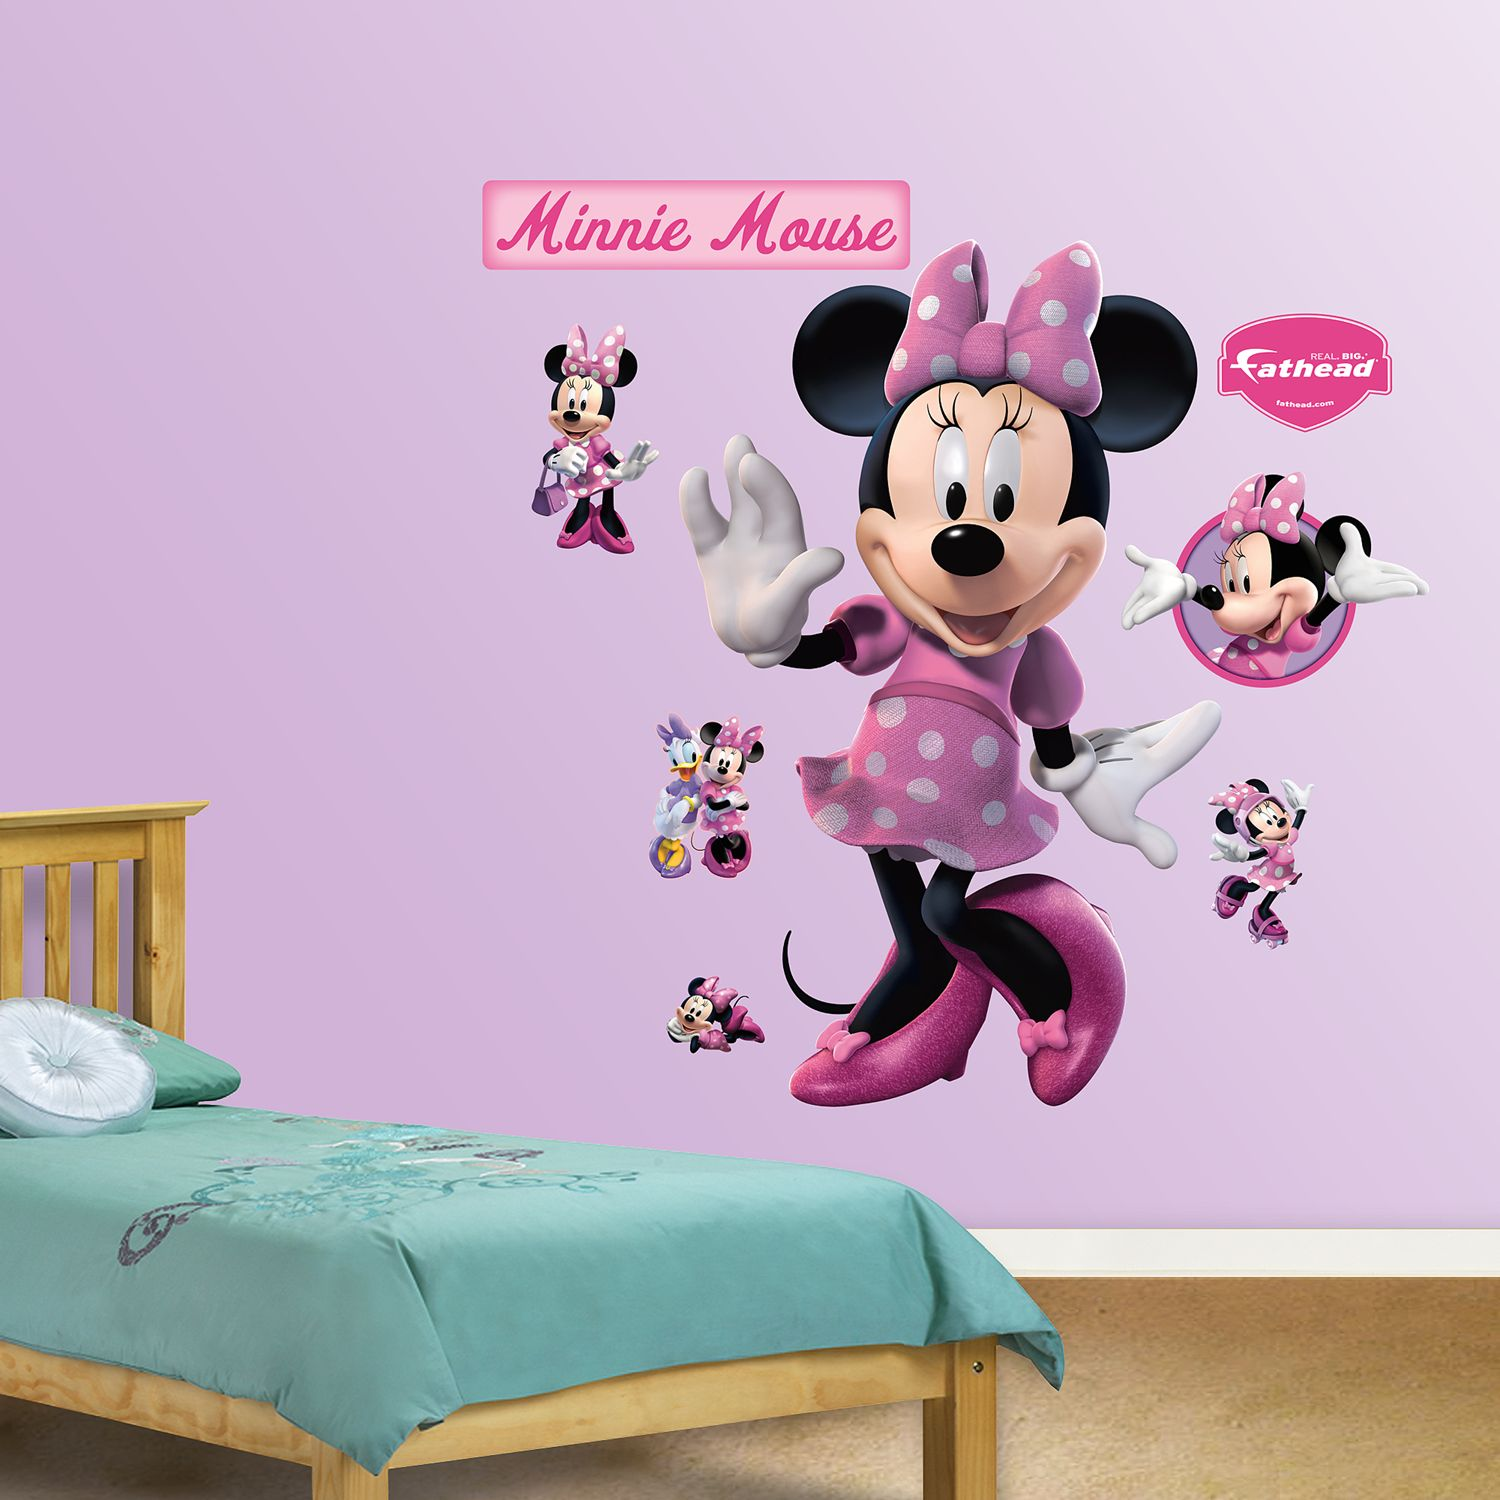 Attirant Disney Mickey Mouse U0026 Friends Minnie Mouse Wall Decals By Fathead